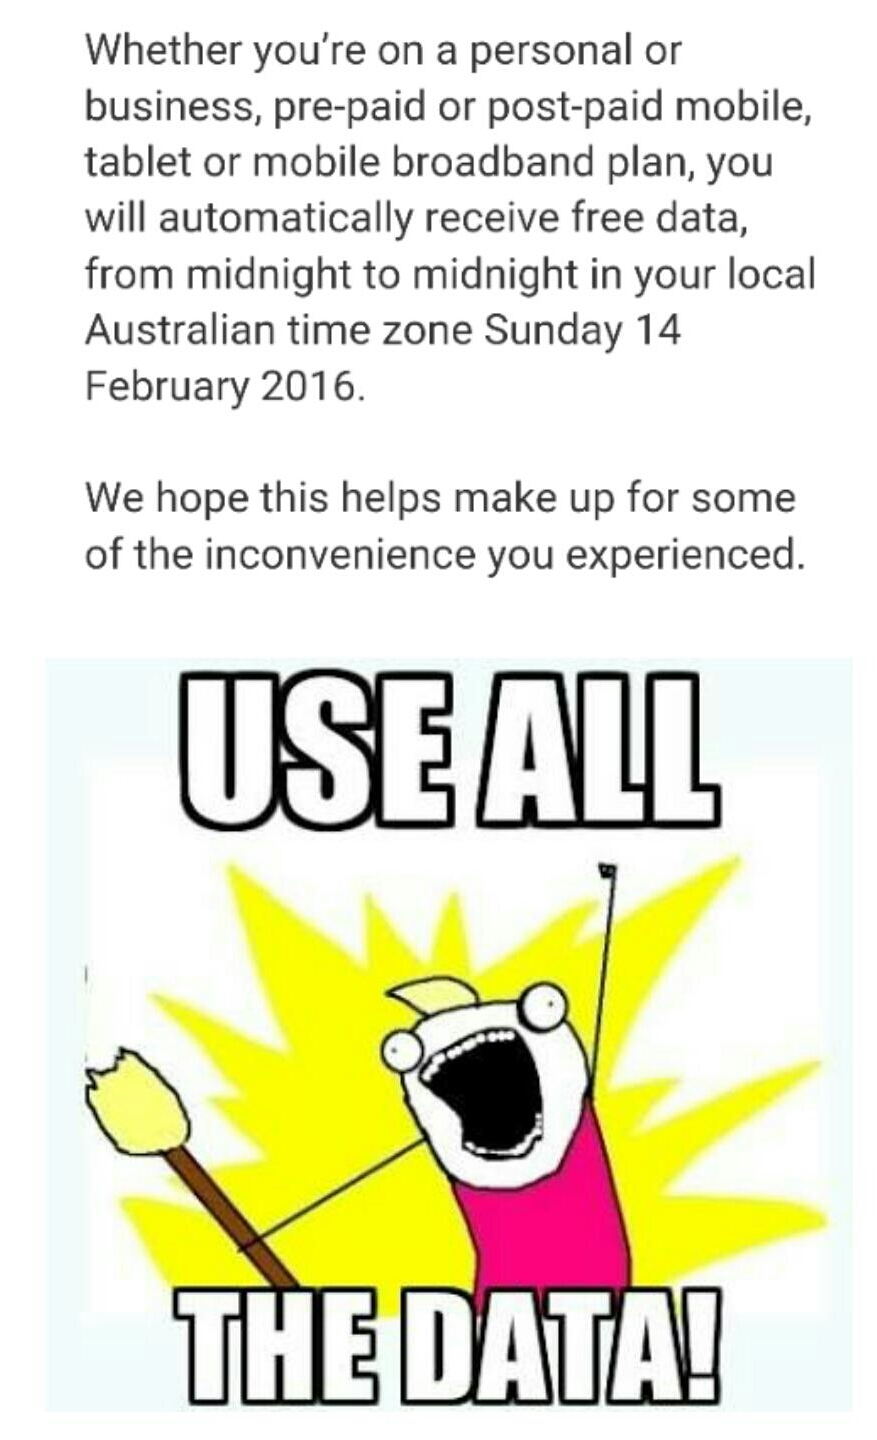 Telstra users be like - meme